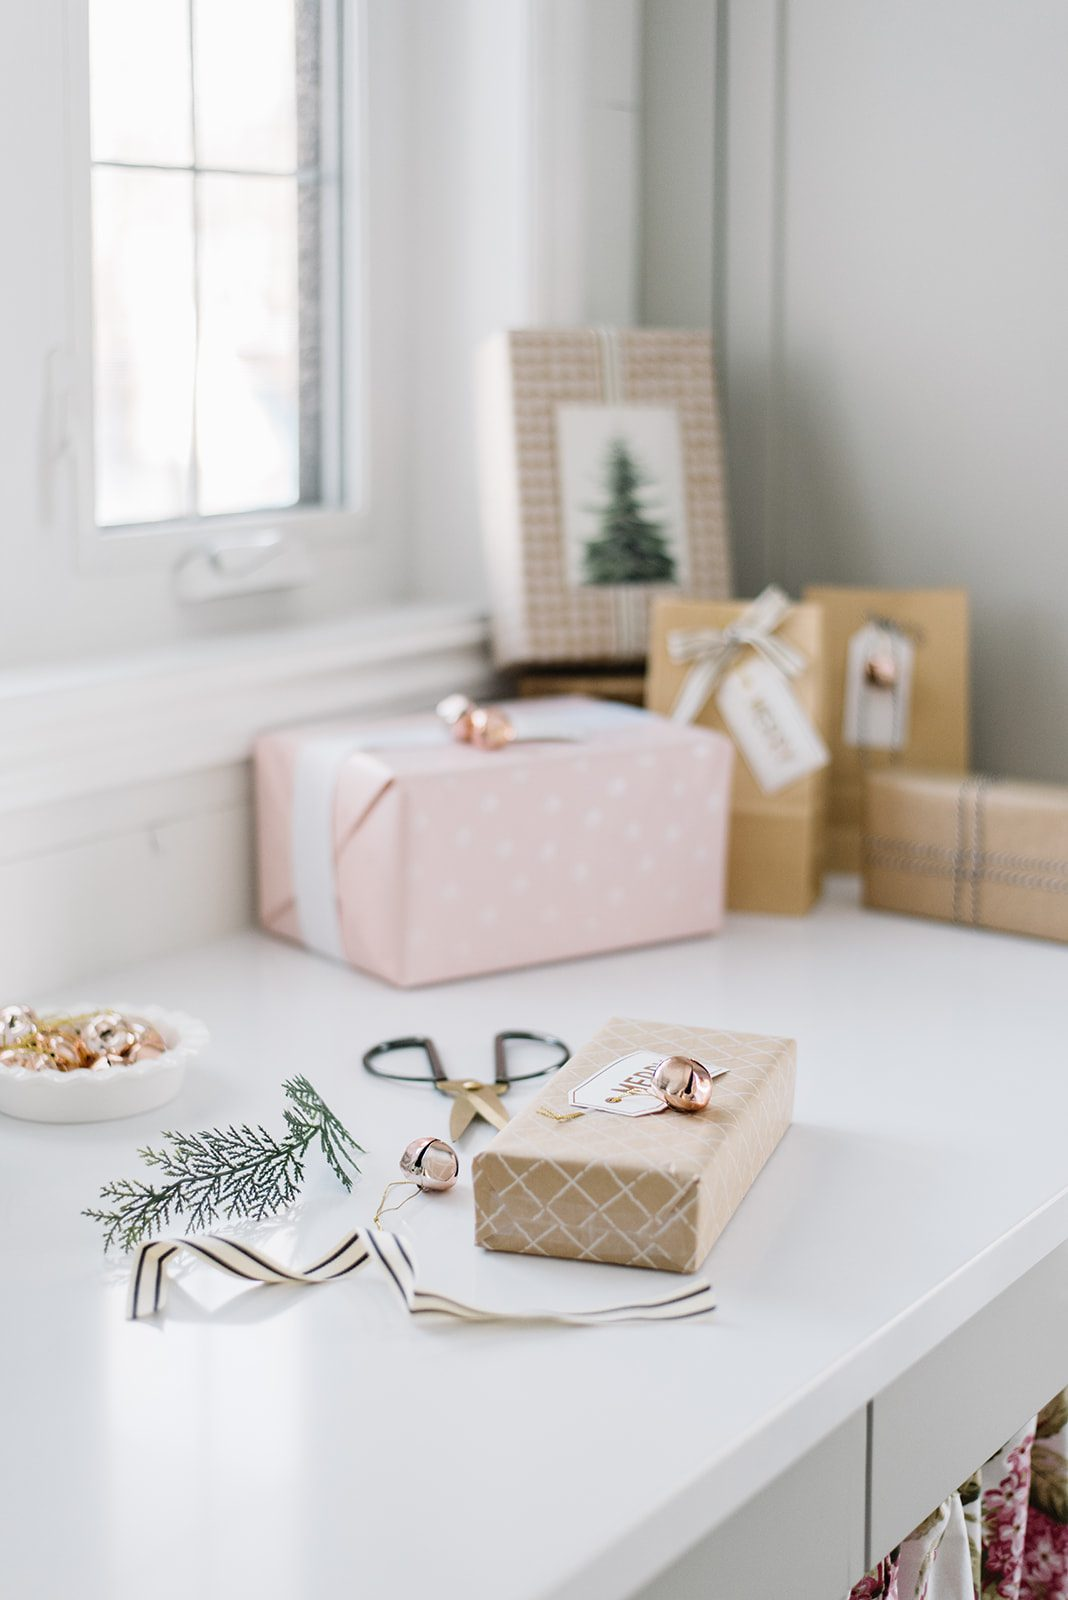 wrapped presents sit on a counter beside scissors and ribbon